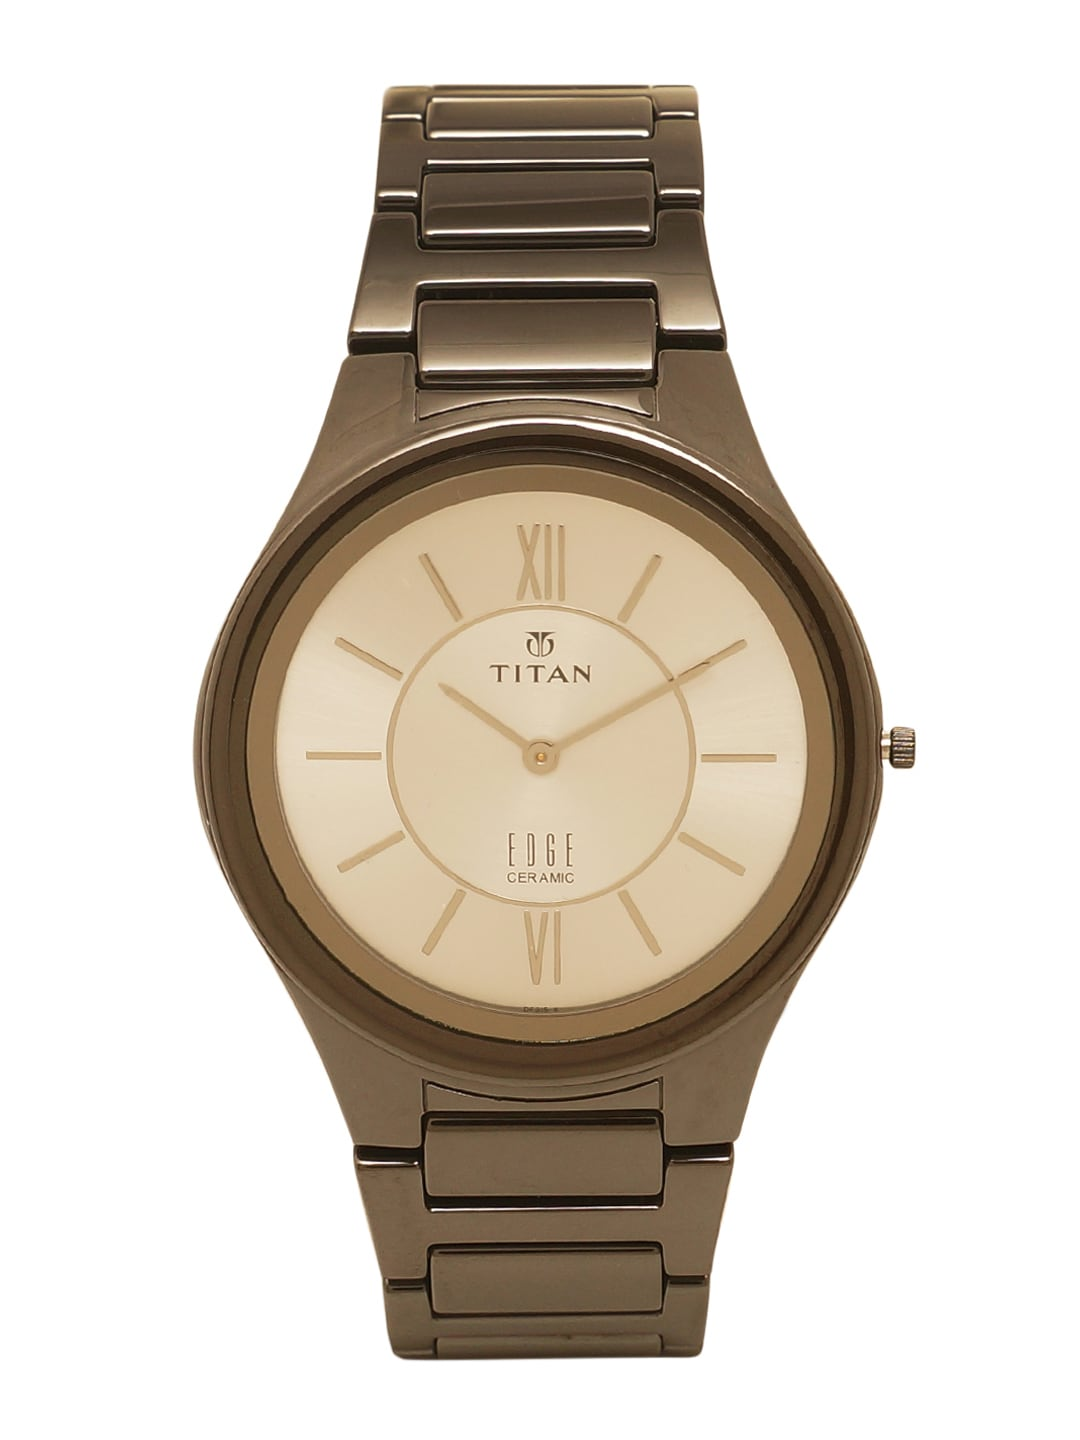 22a741f547d Titan Ceramic Watches - Buy Titan Ceramic Watches online in India